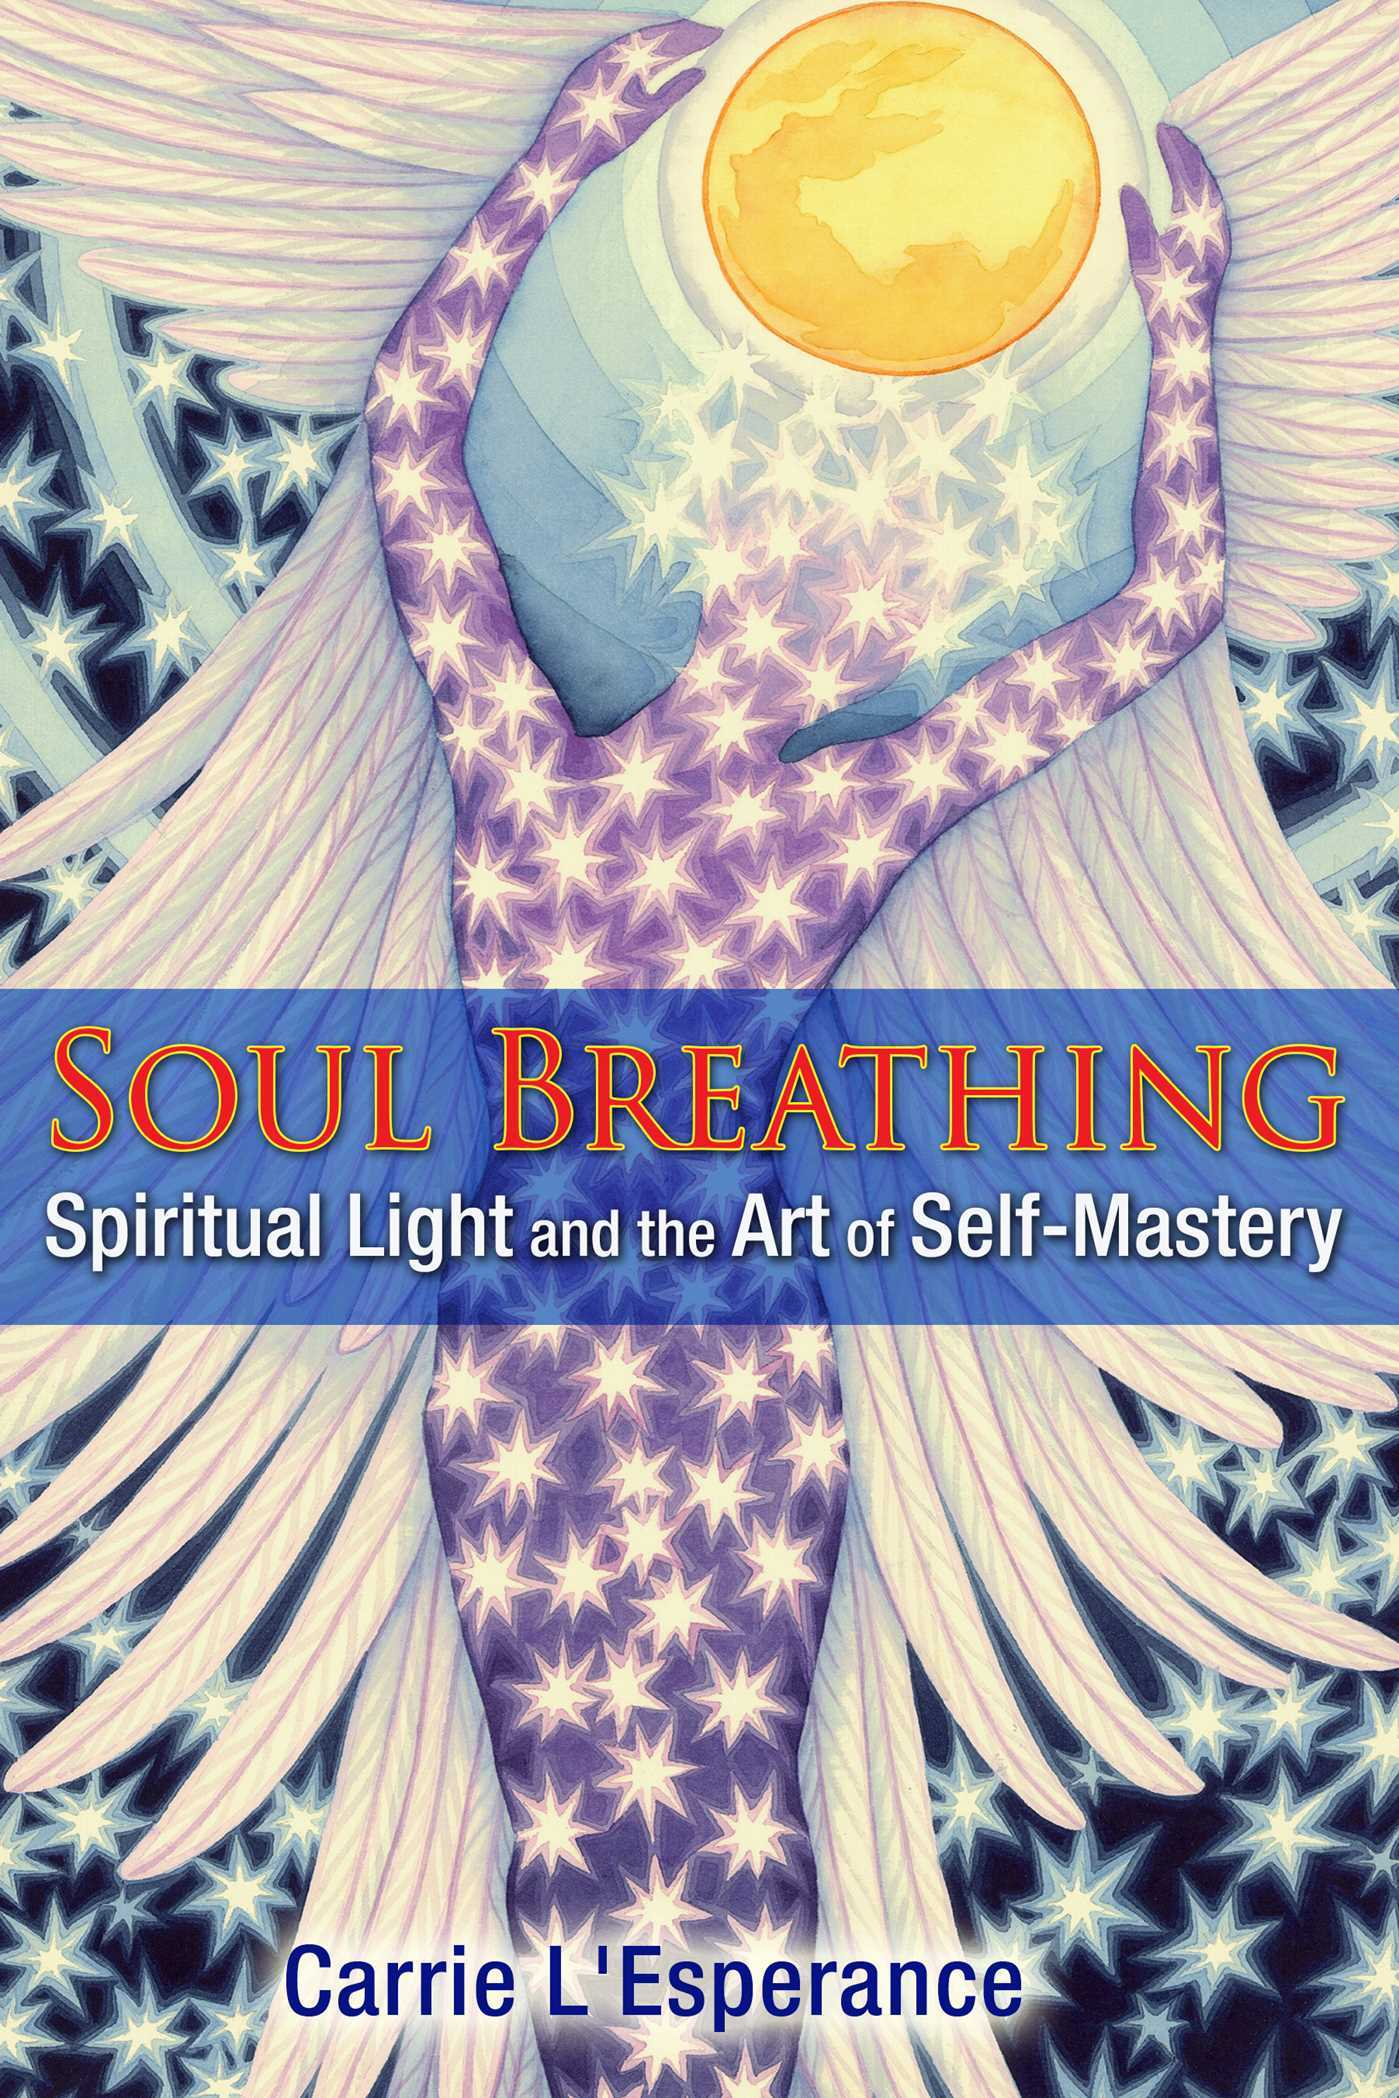 Soul Breathing Spiritual Light and the Art of Self-Mastery